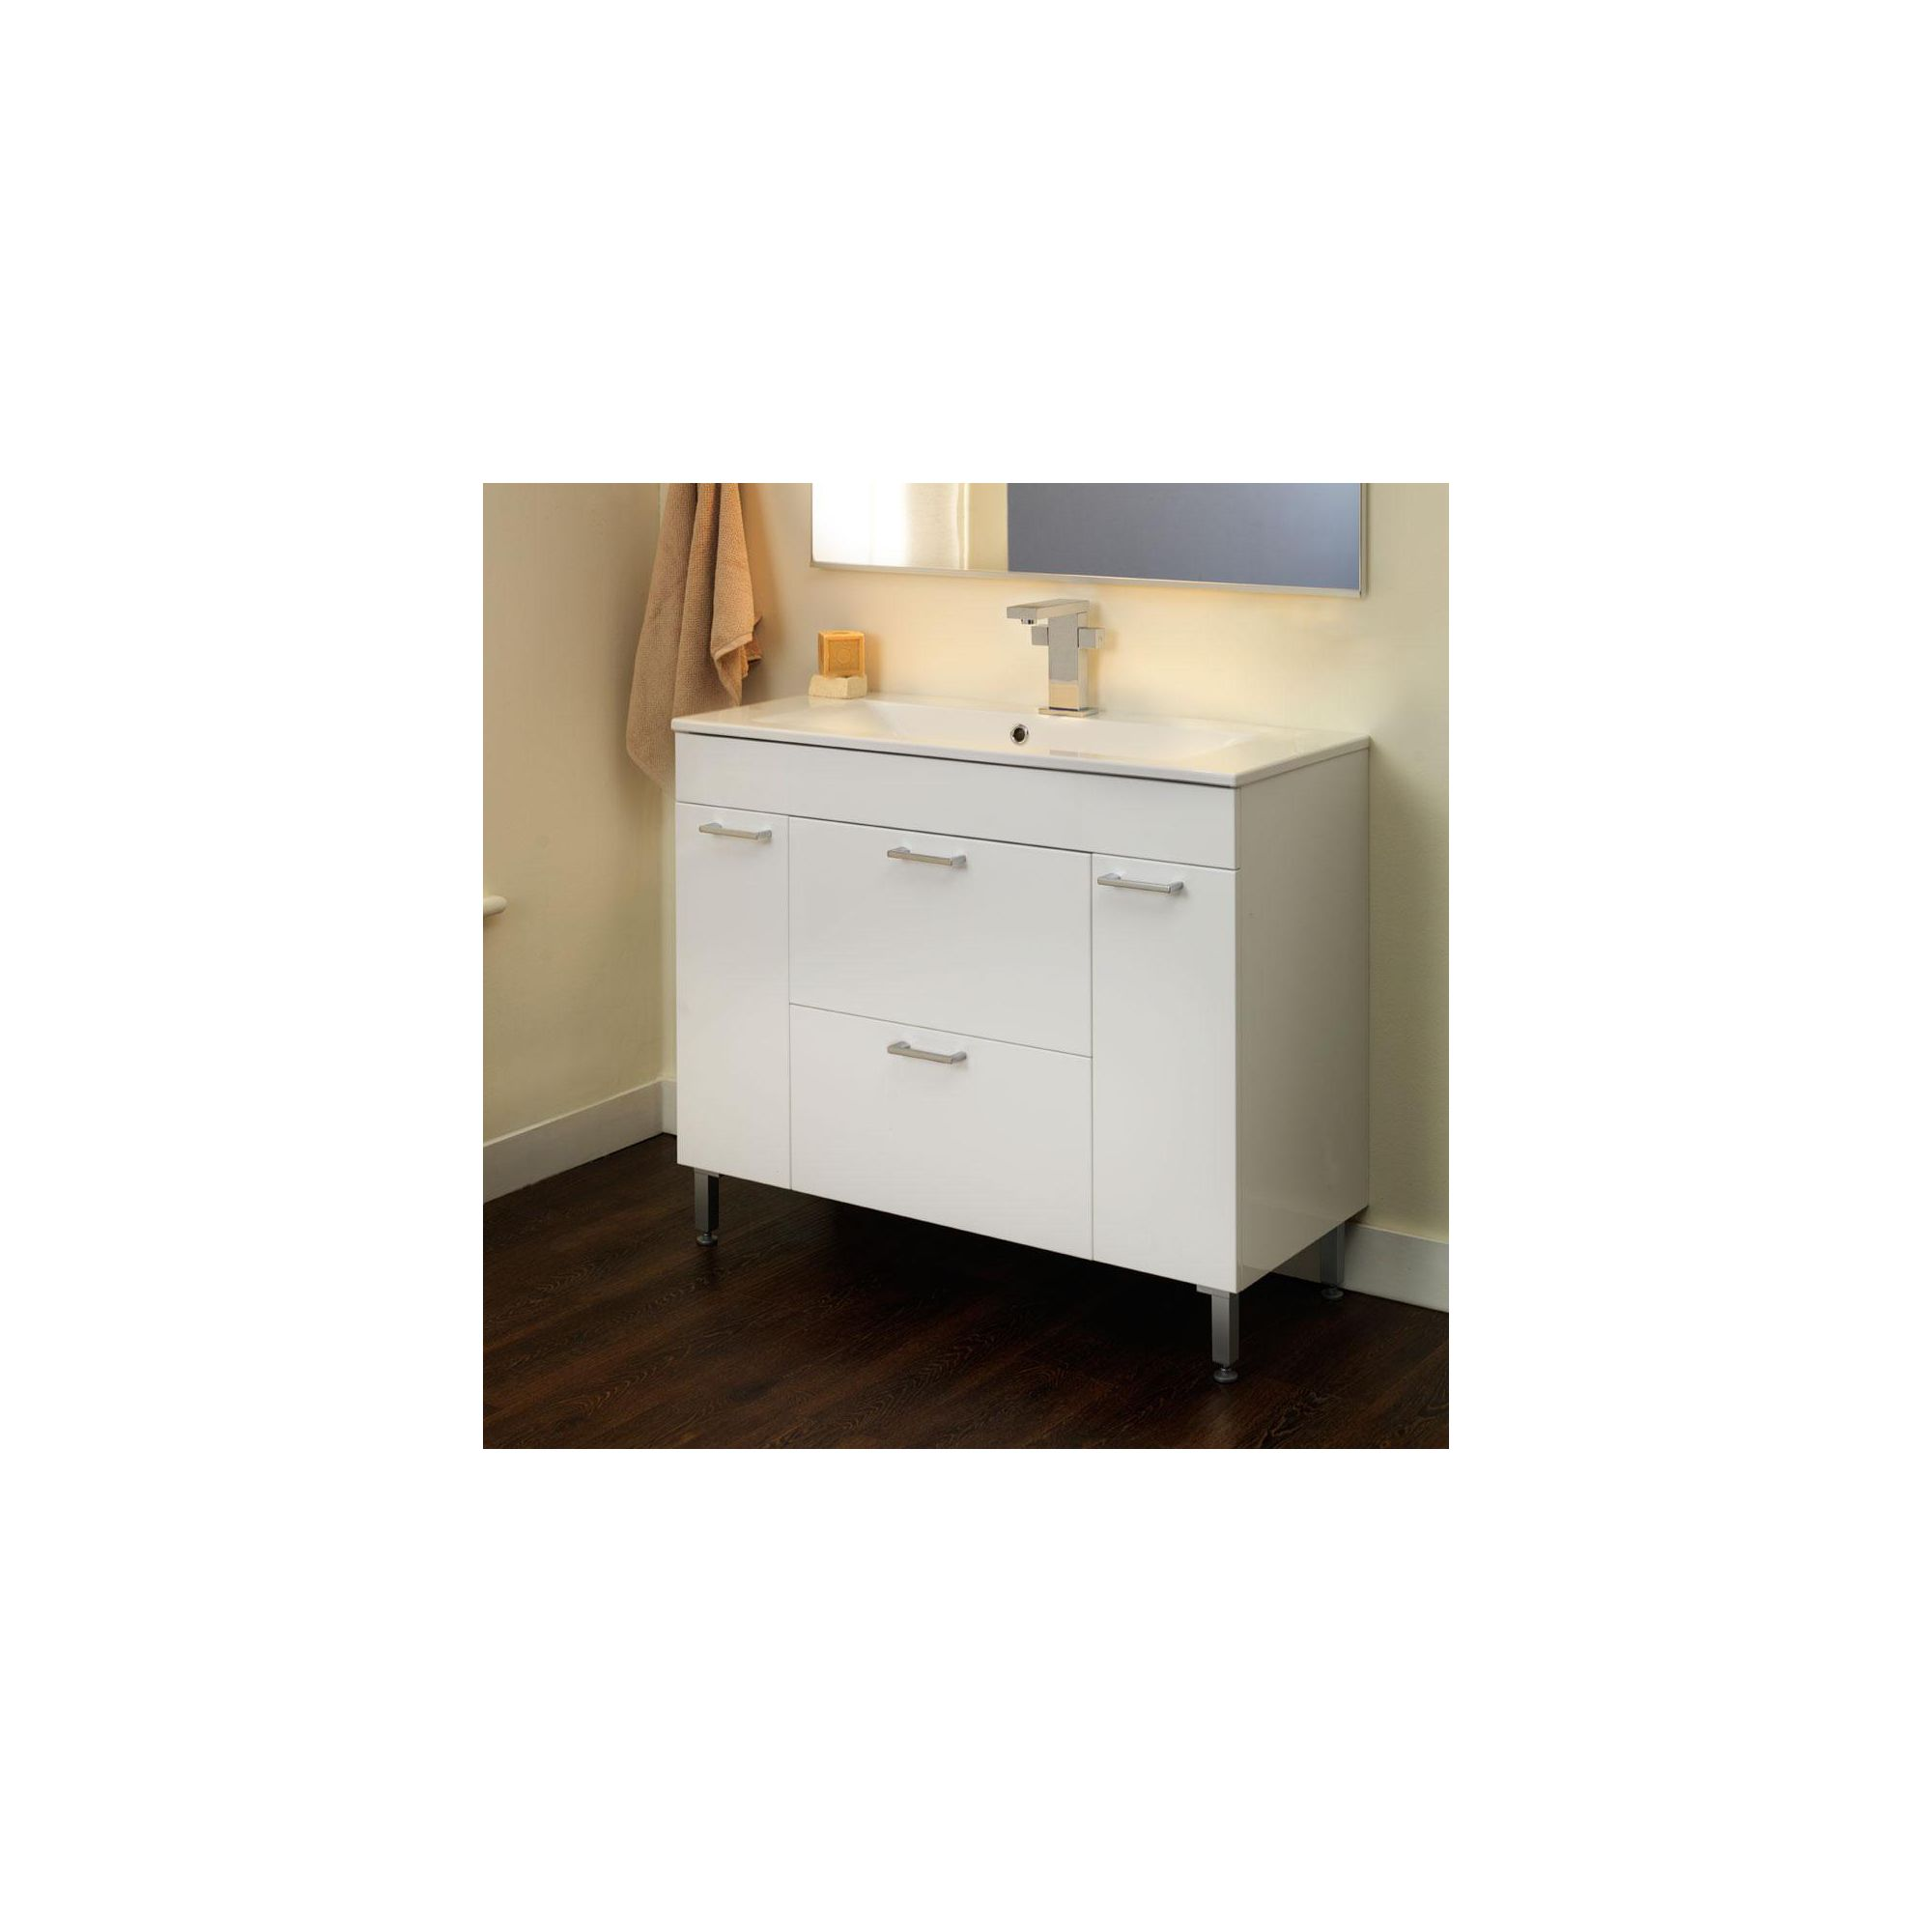 Duchy Trerise White Floor Standing 2 Door 2 Drawer Vanity Unit and Double Bowl Basin - 1000mm Wide x 445mm Deep